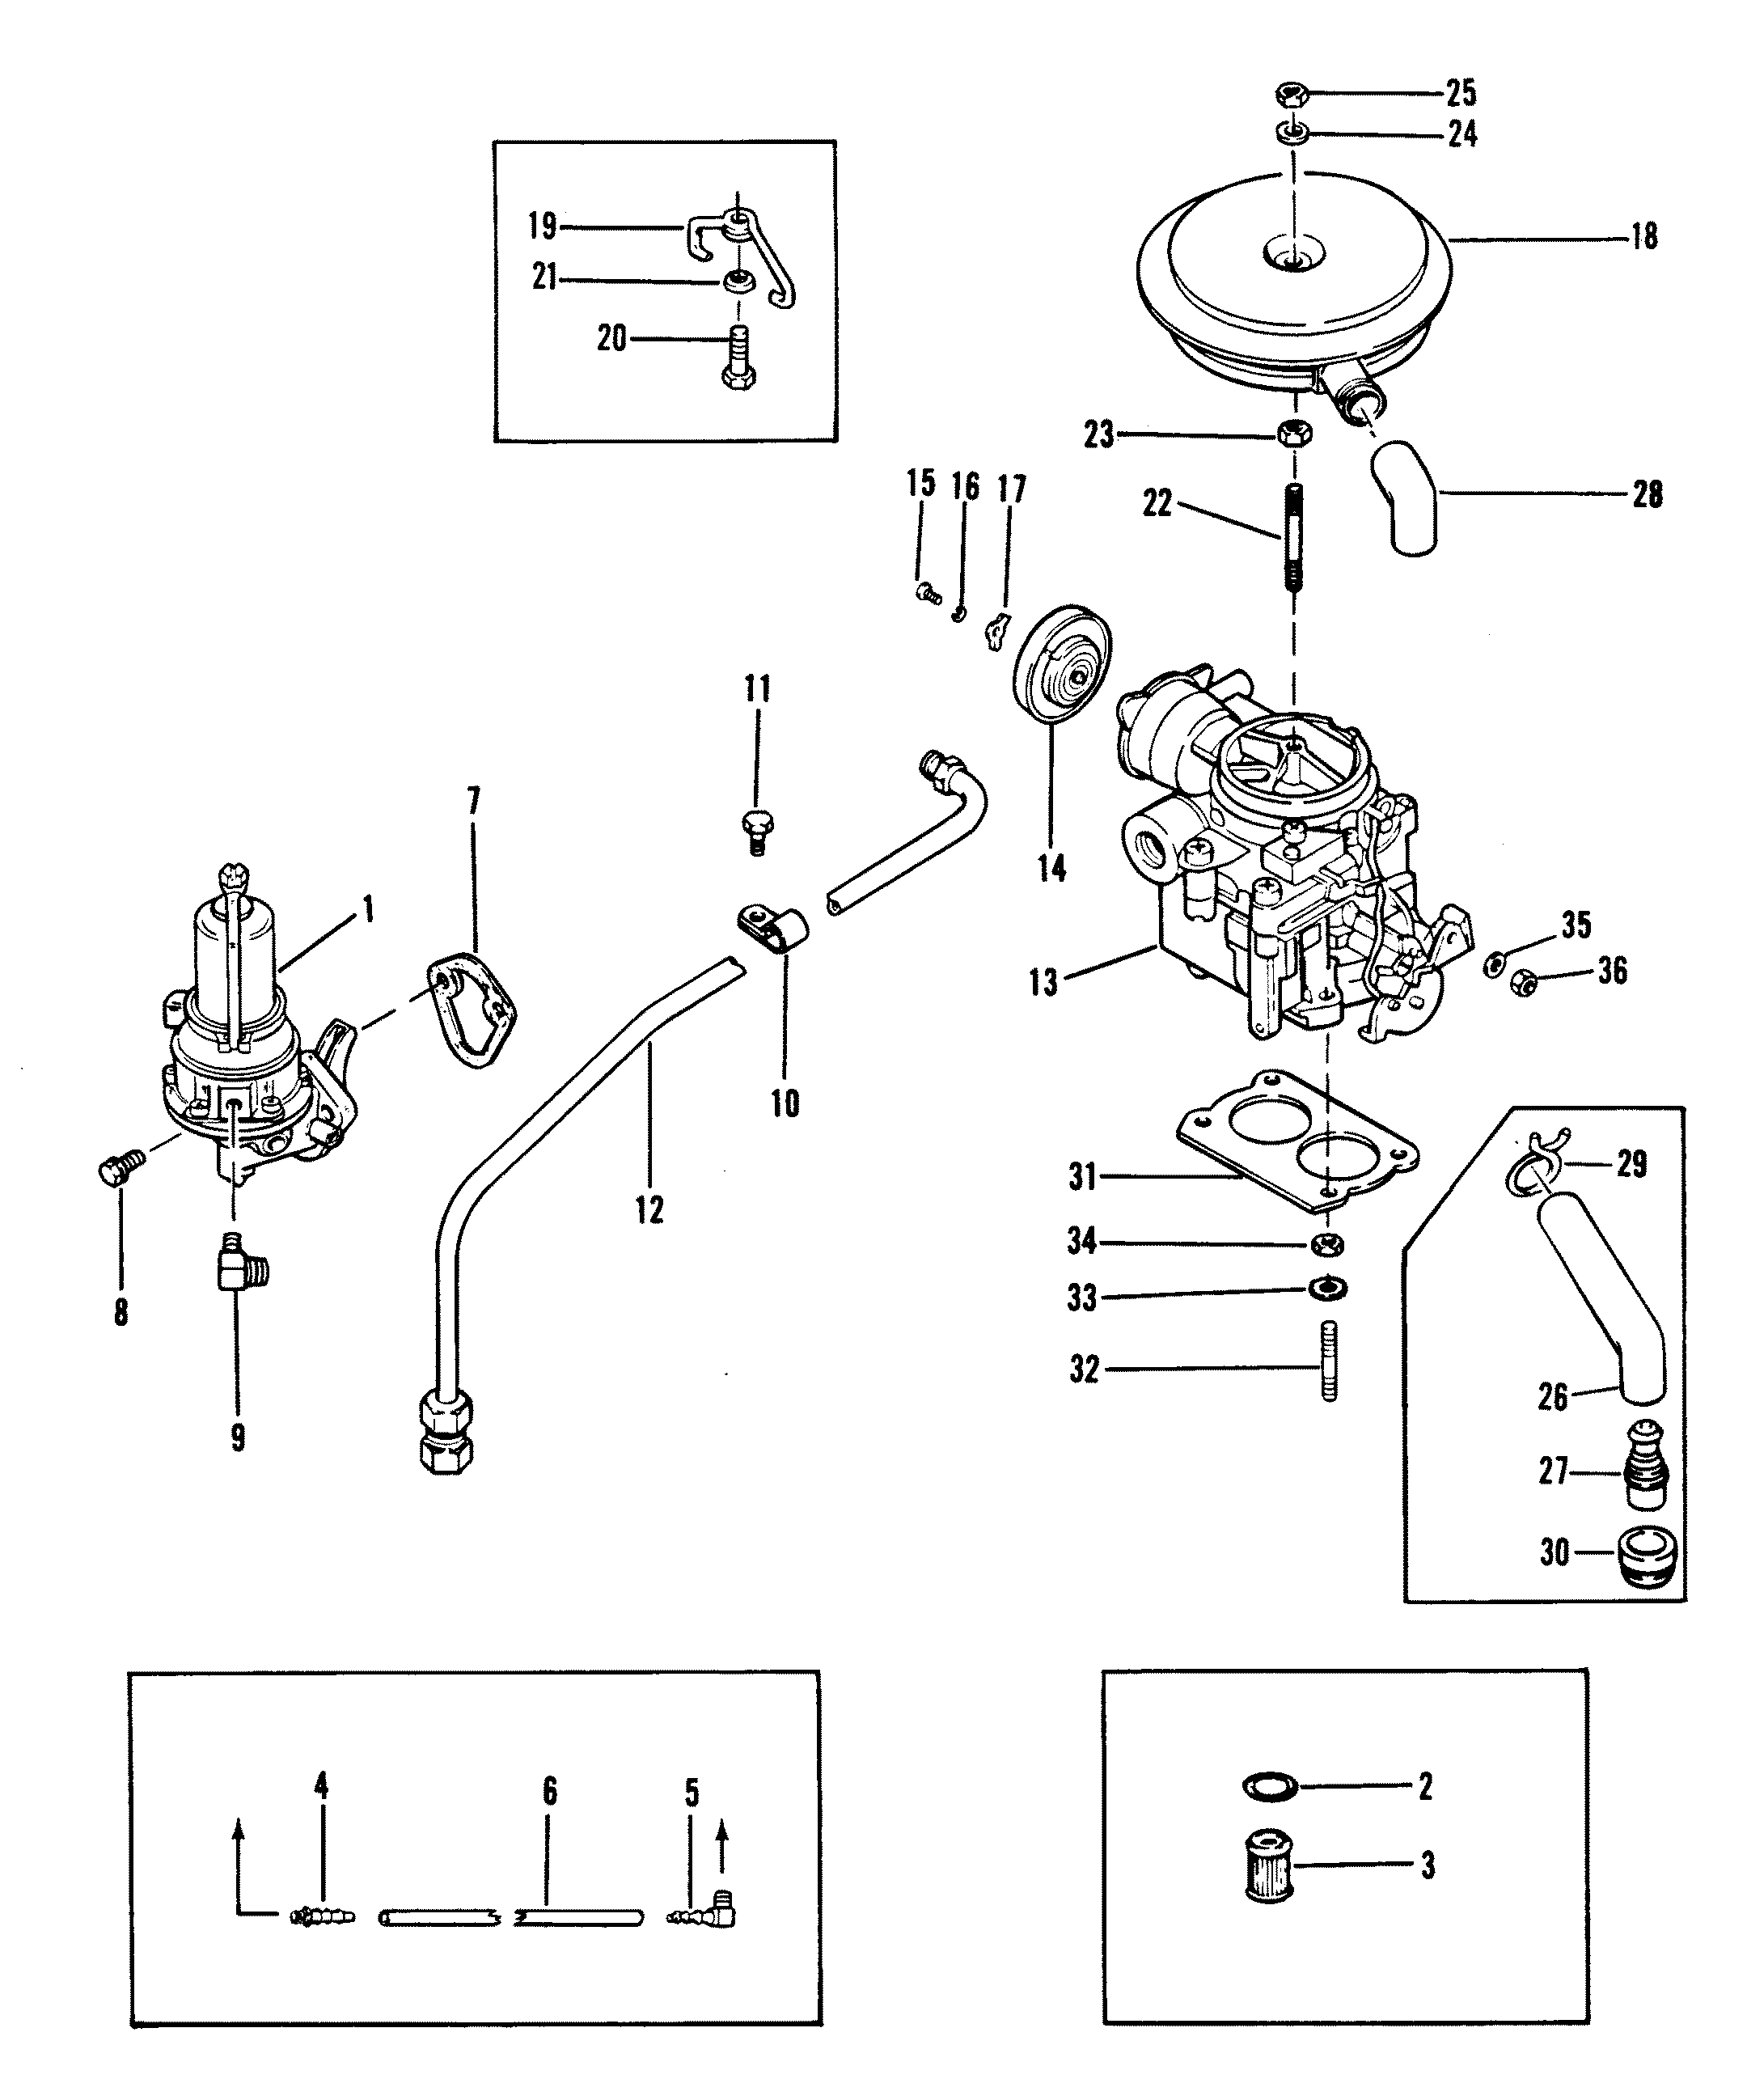 Mercruiser 120 Hp Ignition Wiring Diagram Trol A Temp Wiring Diagram Coded 03 Cukk Jeanjaures37 Fr